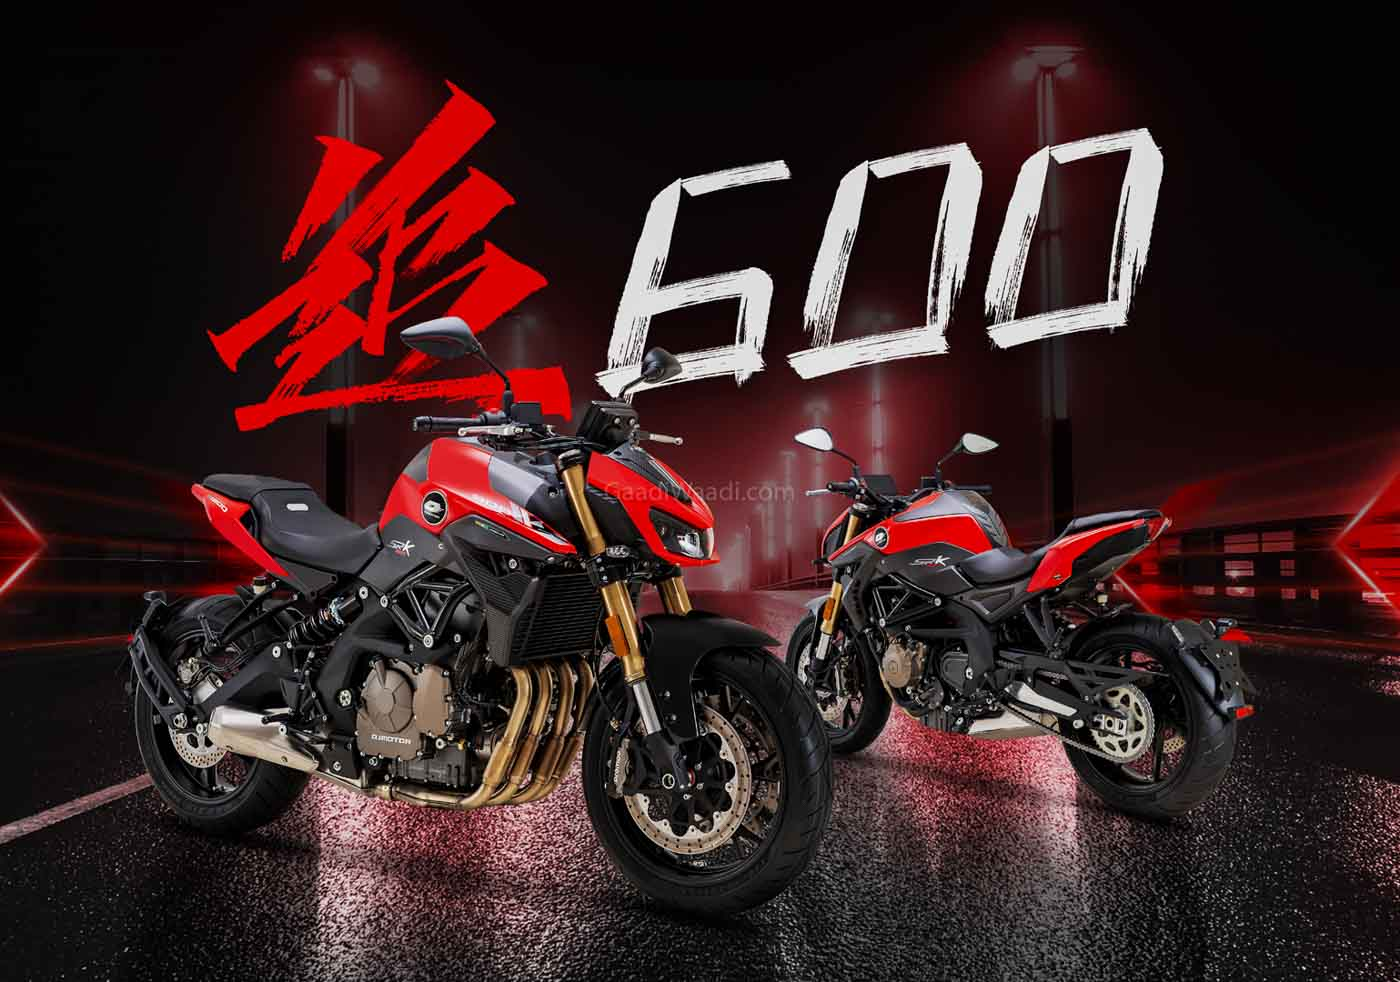 India-bound new 2020 Benelli TNT 600i launched in China